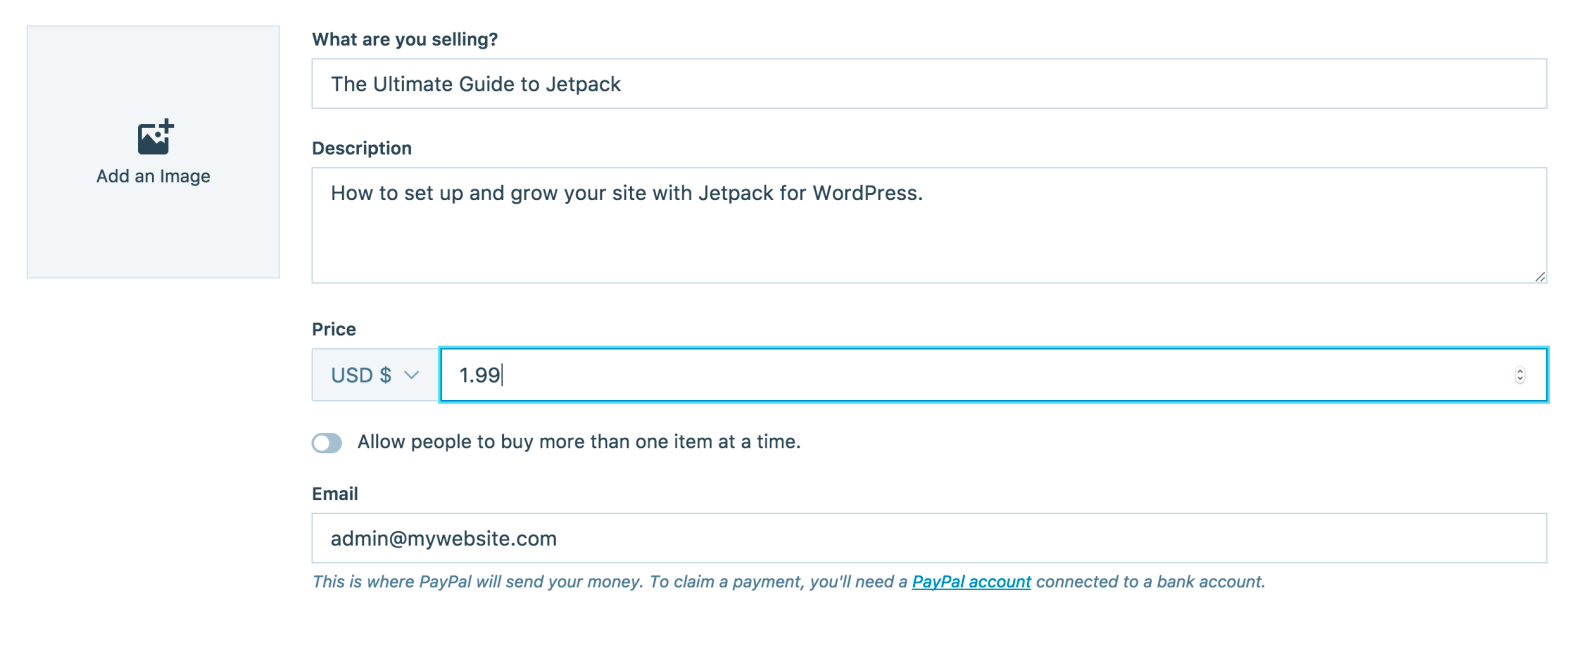 PayPal Payment Configuration Options from Jetpack